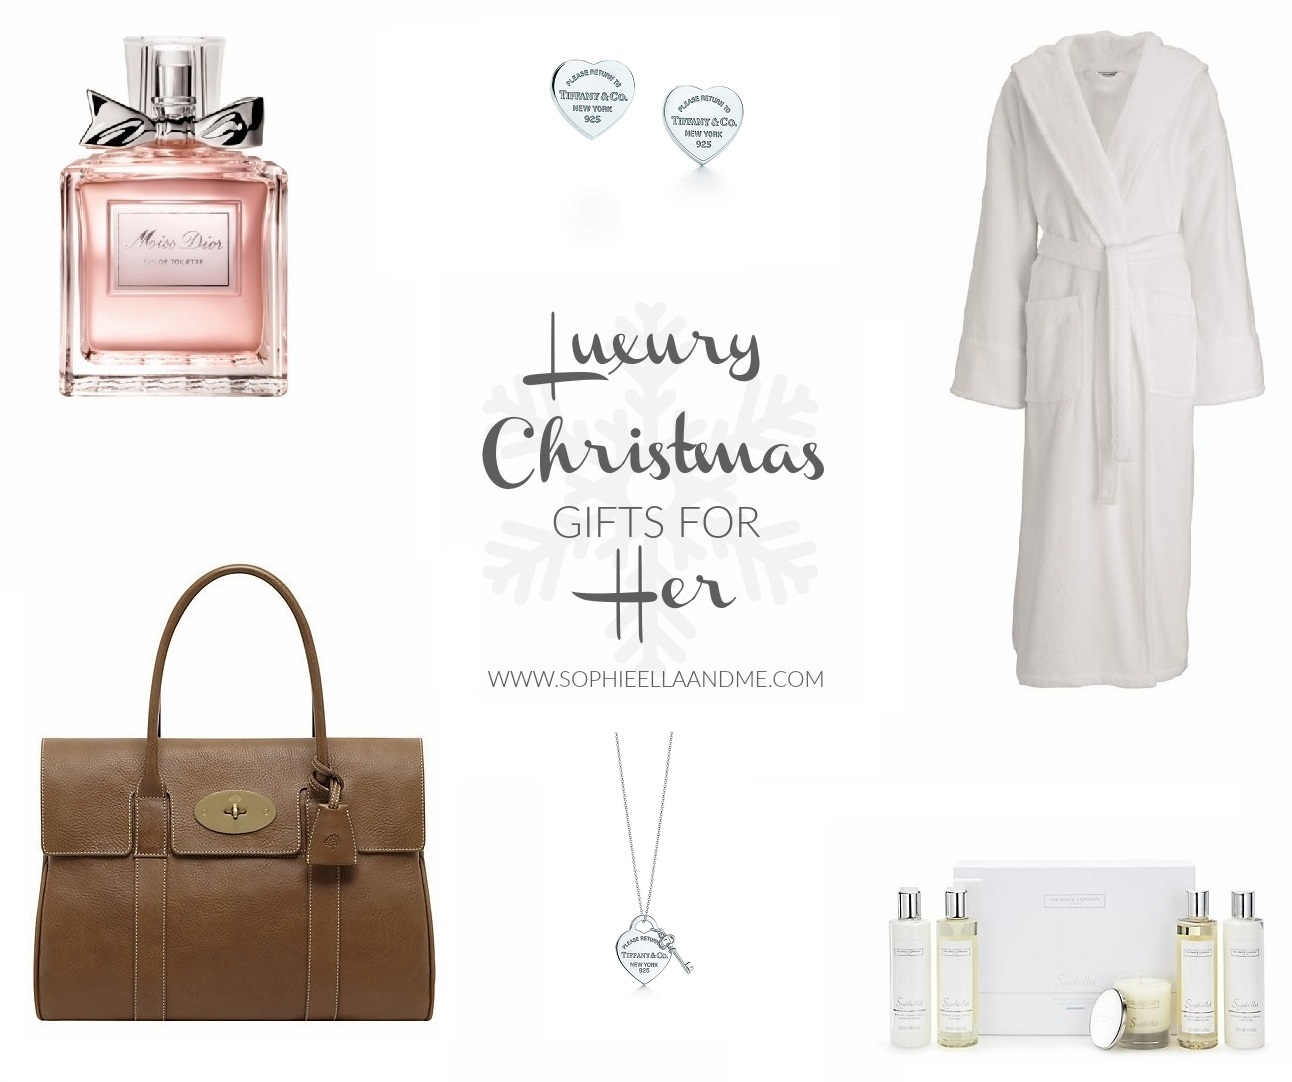 Christmas Gift Guide 2015: Luxury Gifts For Her | Sophie Ella and Me